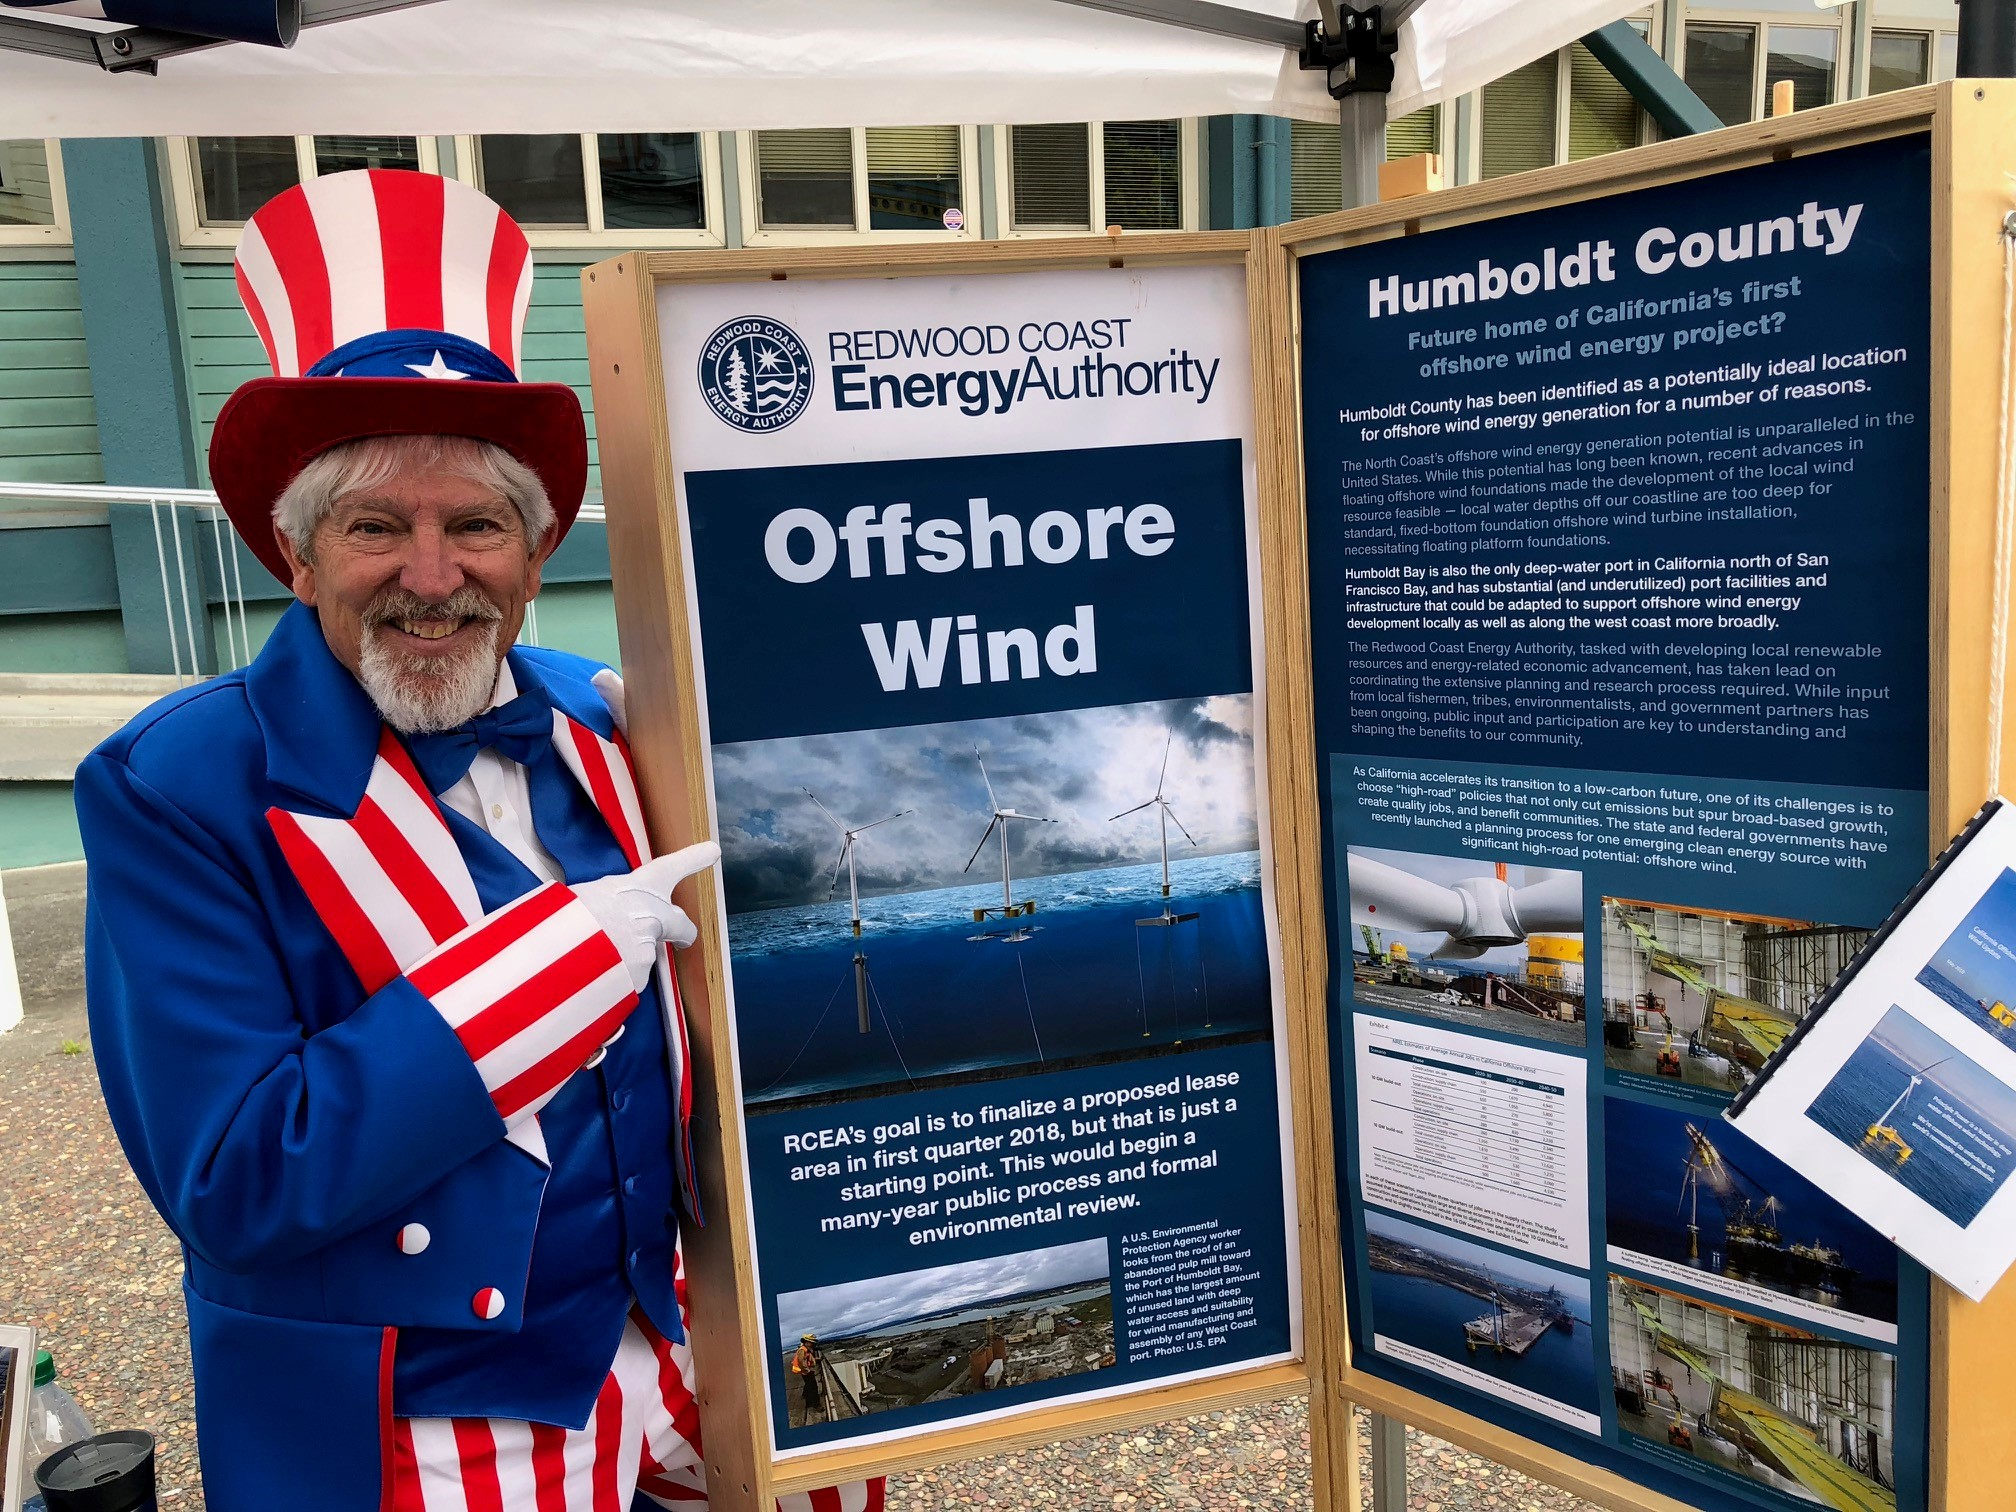 Man dressed in American garb next to an RCEA poster for offshore wind project